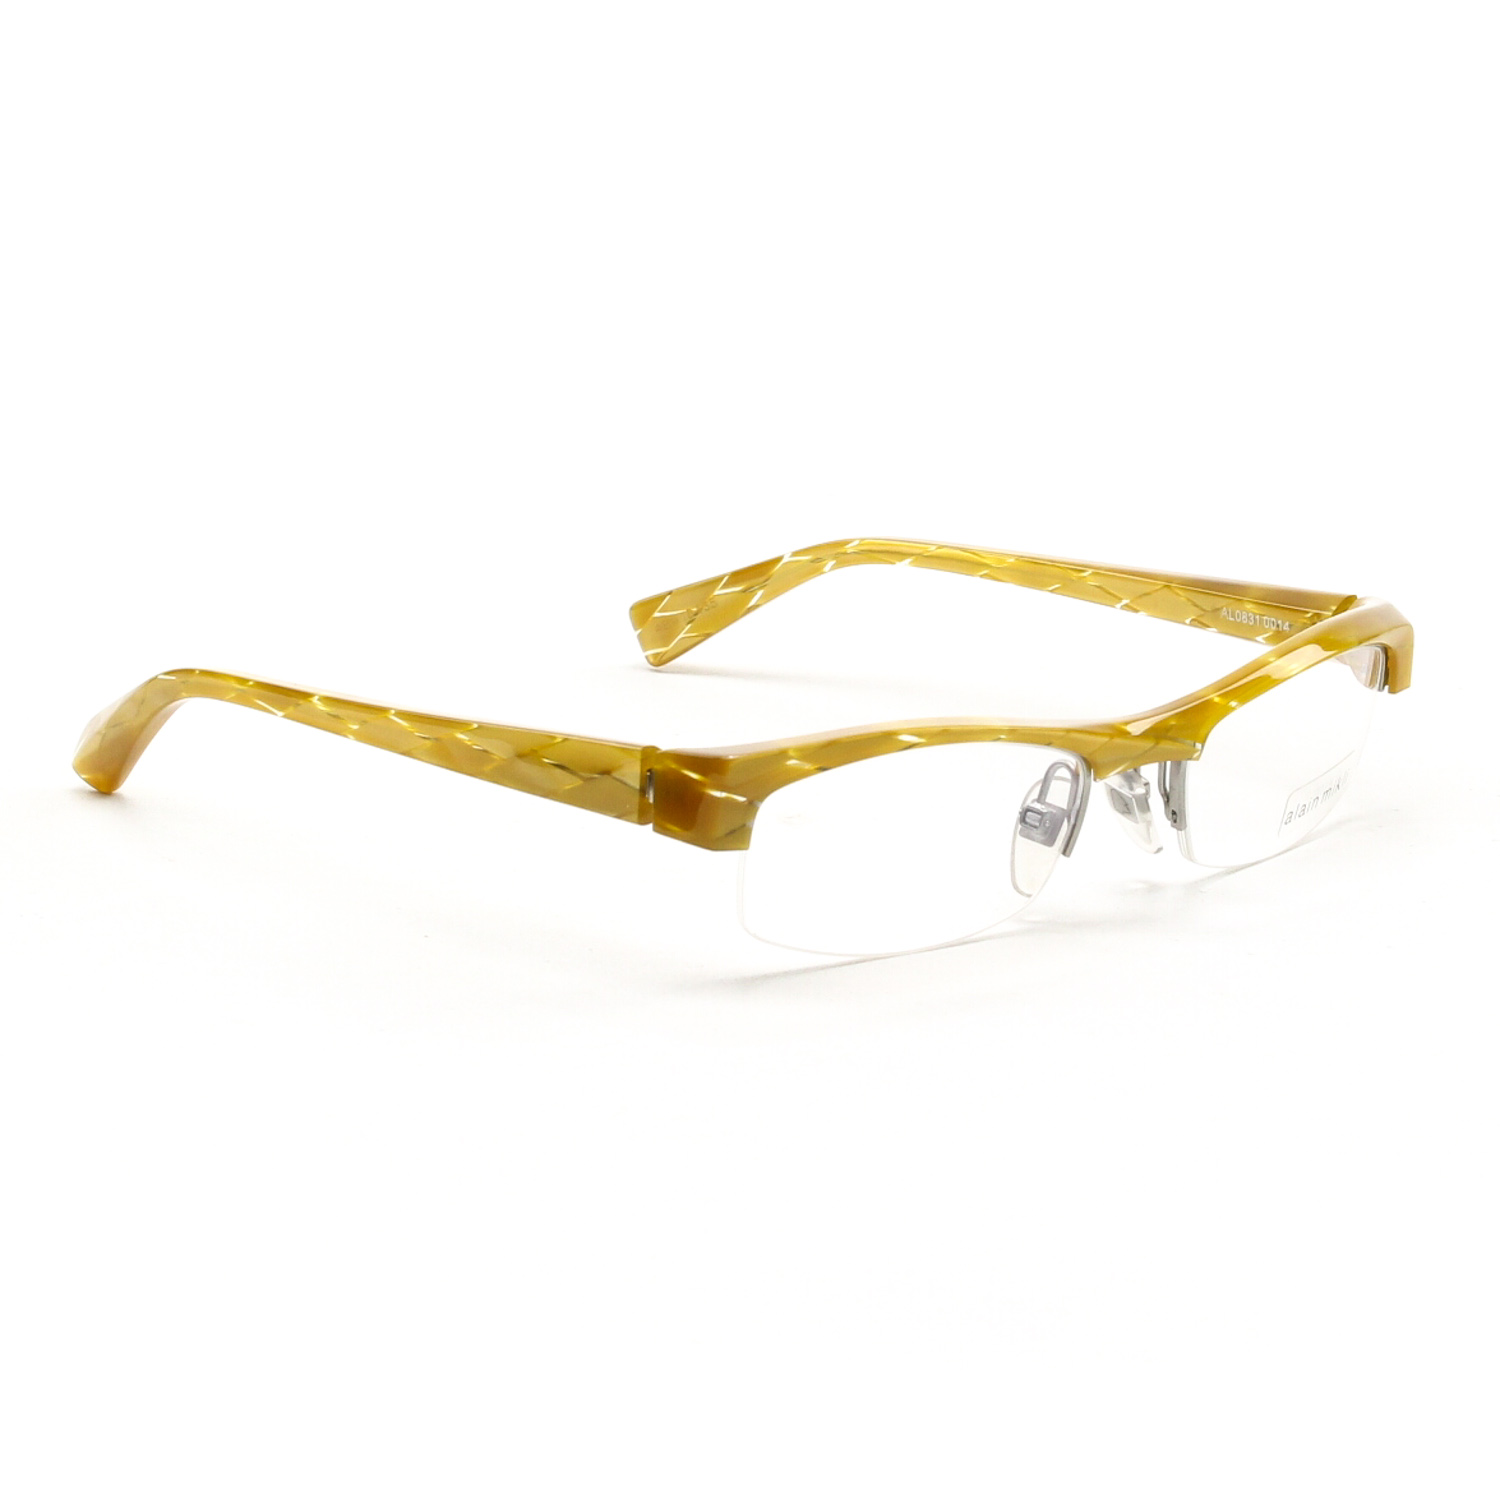 Glasses Frames With Diamonds : Alain Mikli Eyeglasses AL0831 0014 Translucent Yellow Gold ...